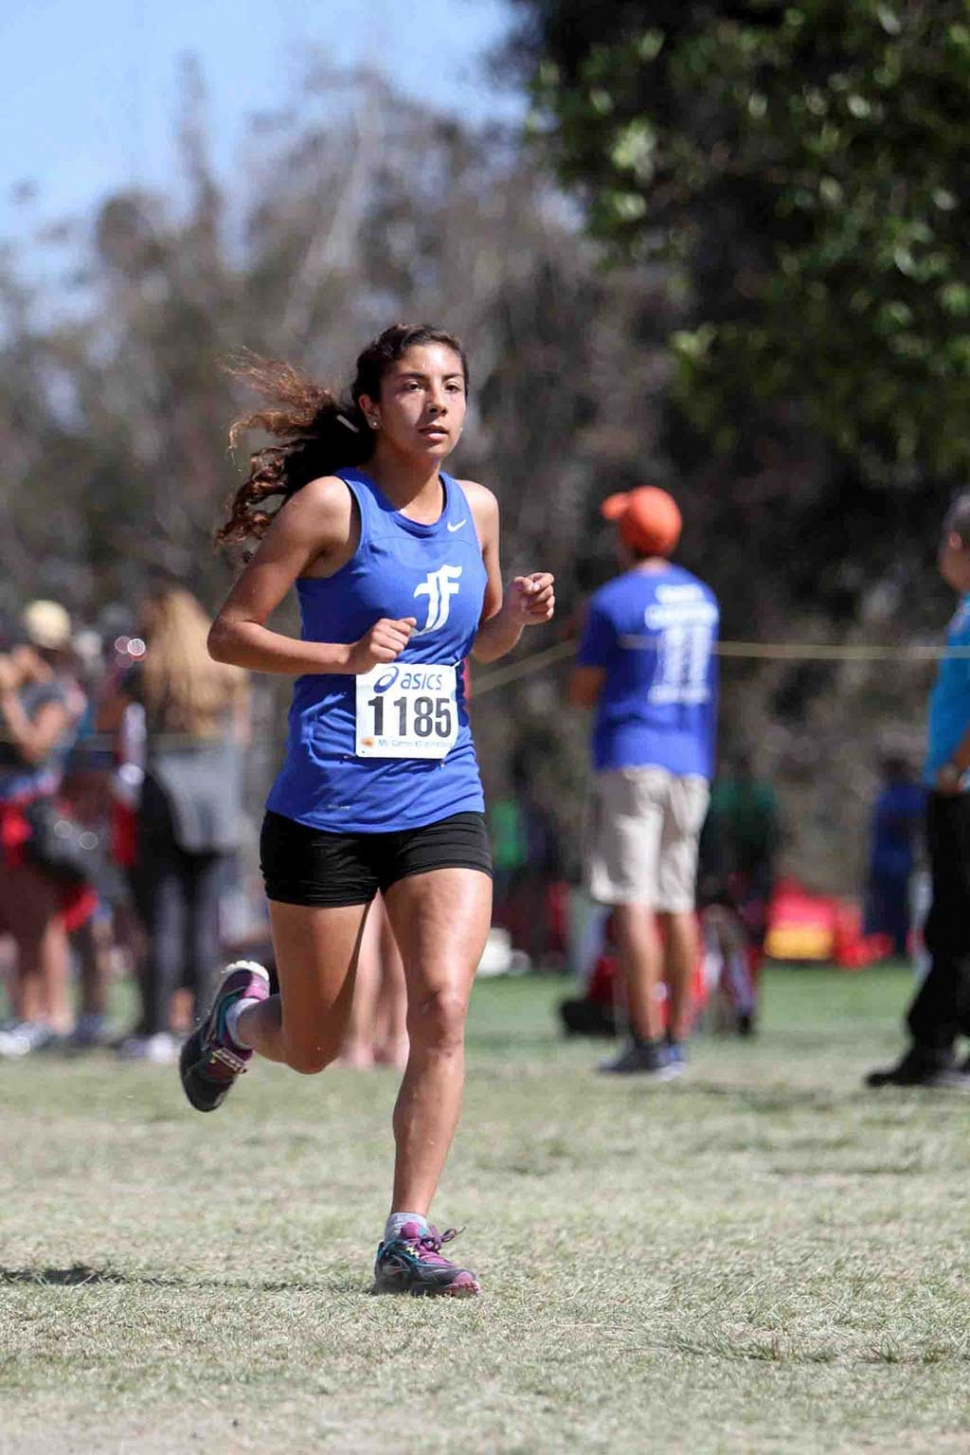 Senior Lauren Magdaleno at this past Saturday's 37th Annual Mt. Carmel/Movin Shoes Cross Country Invitational.